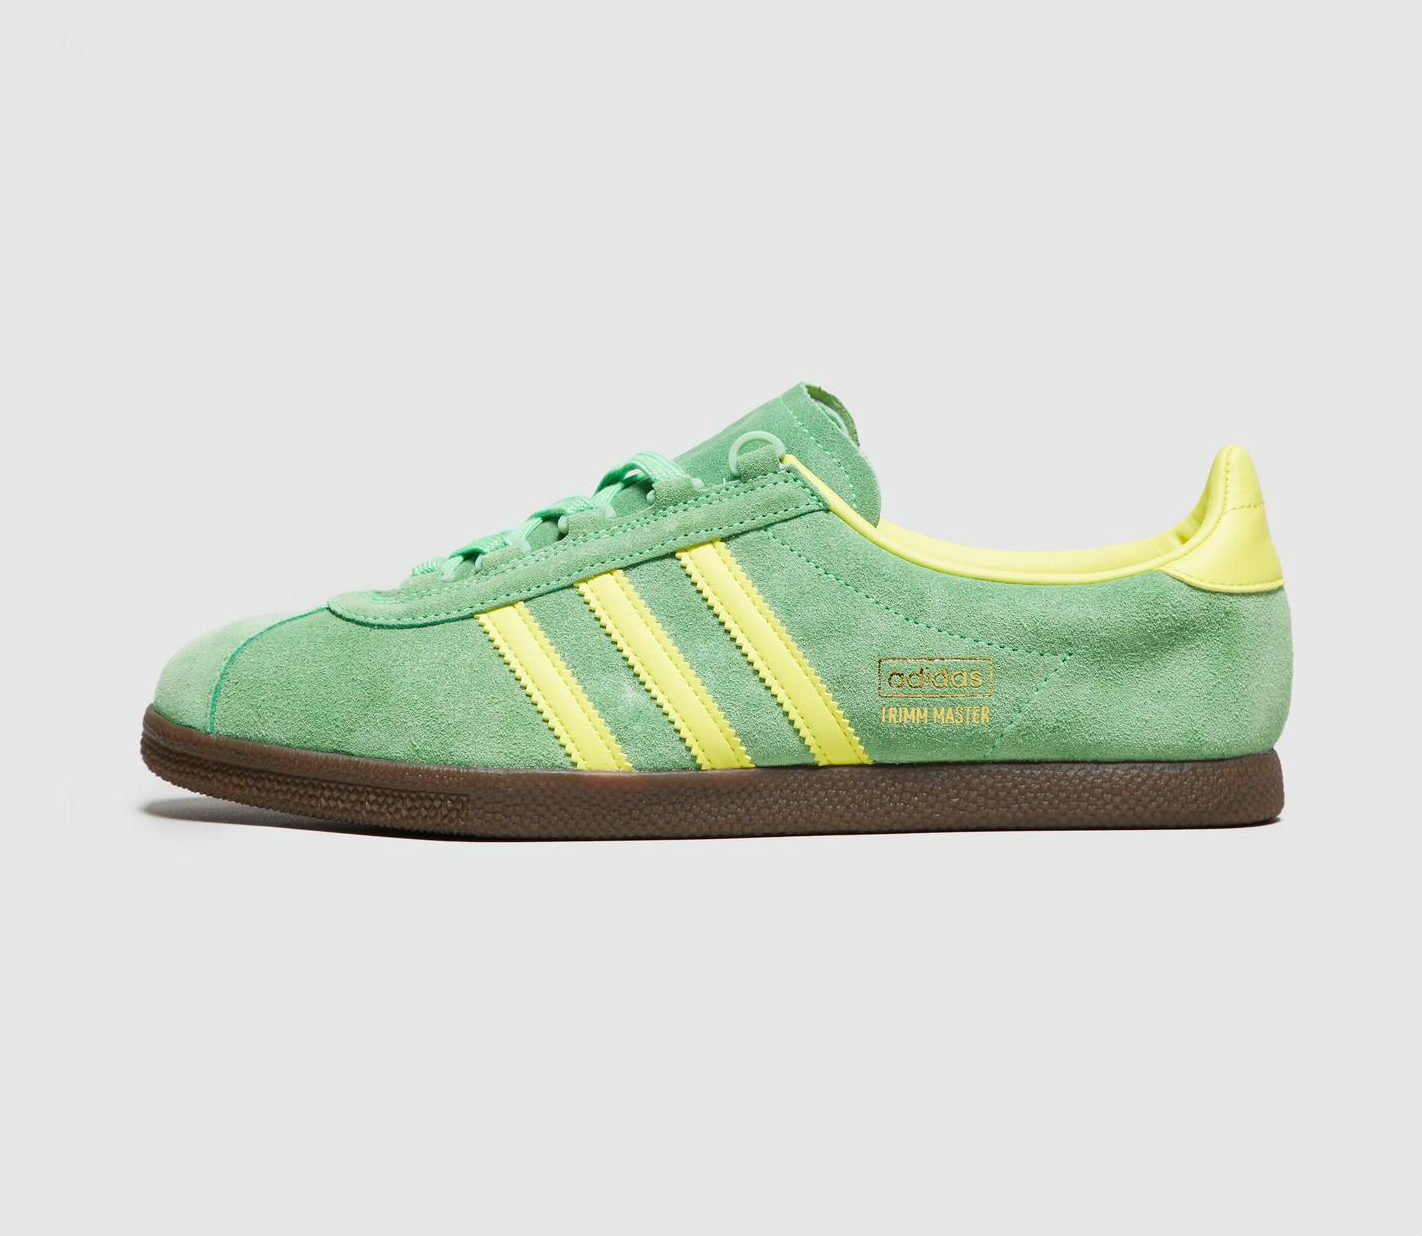 Adidas Archive Trimm Master OG - Green / Lime